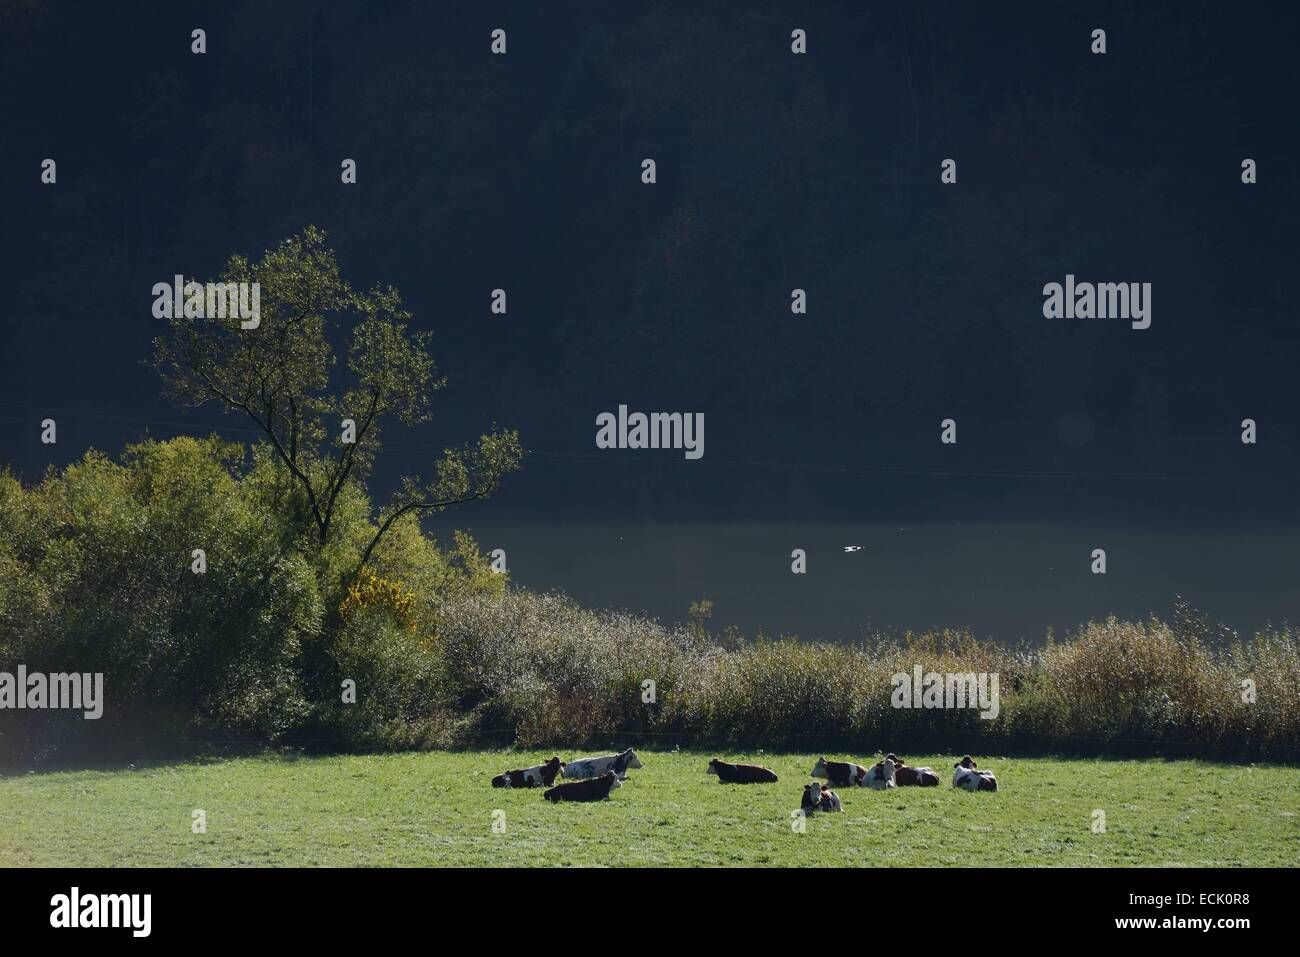 France, Doubs, Glere, Doubs valley, Montbéliardes cows grazing ruminant on the Doubs River - Stock Image